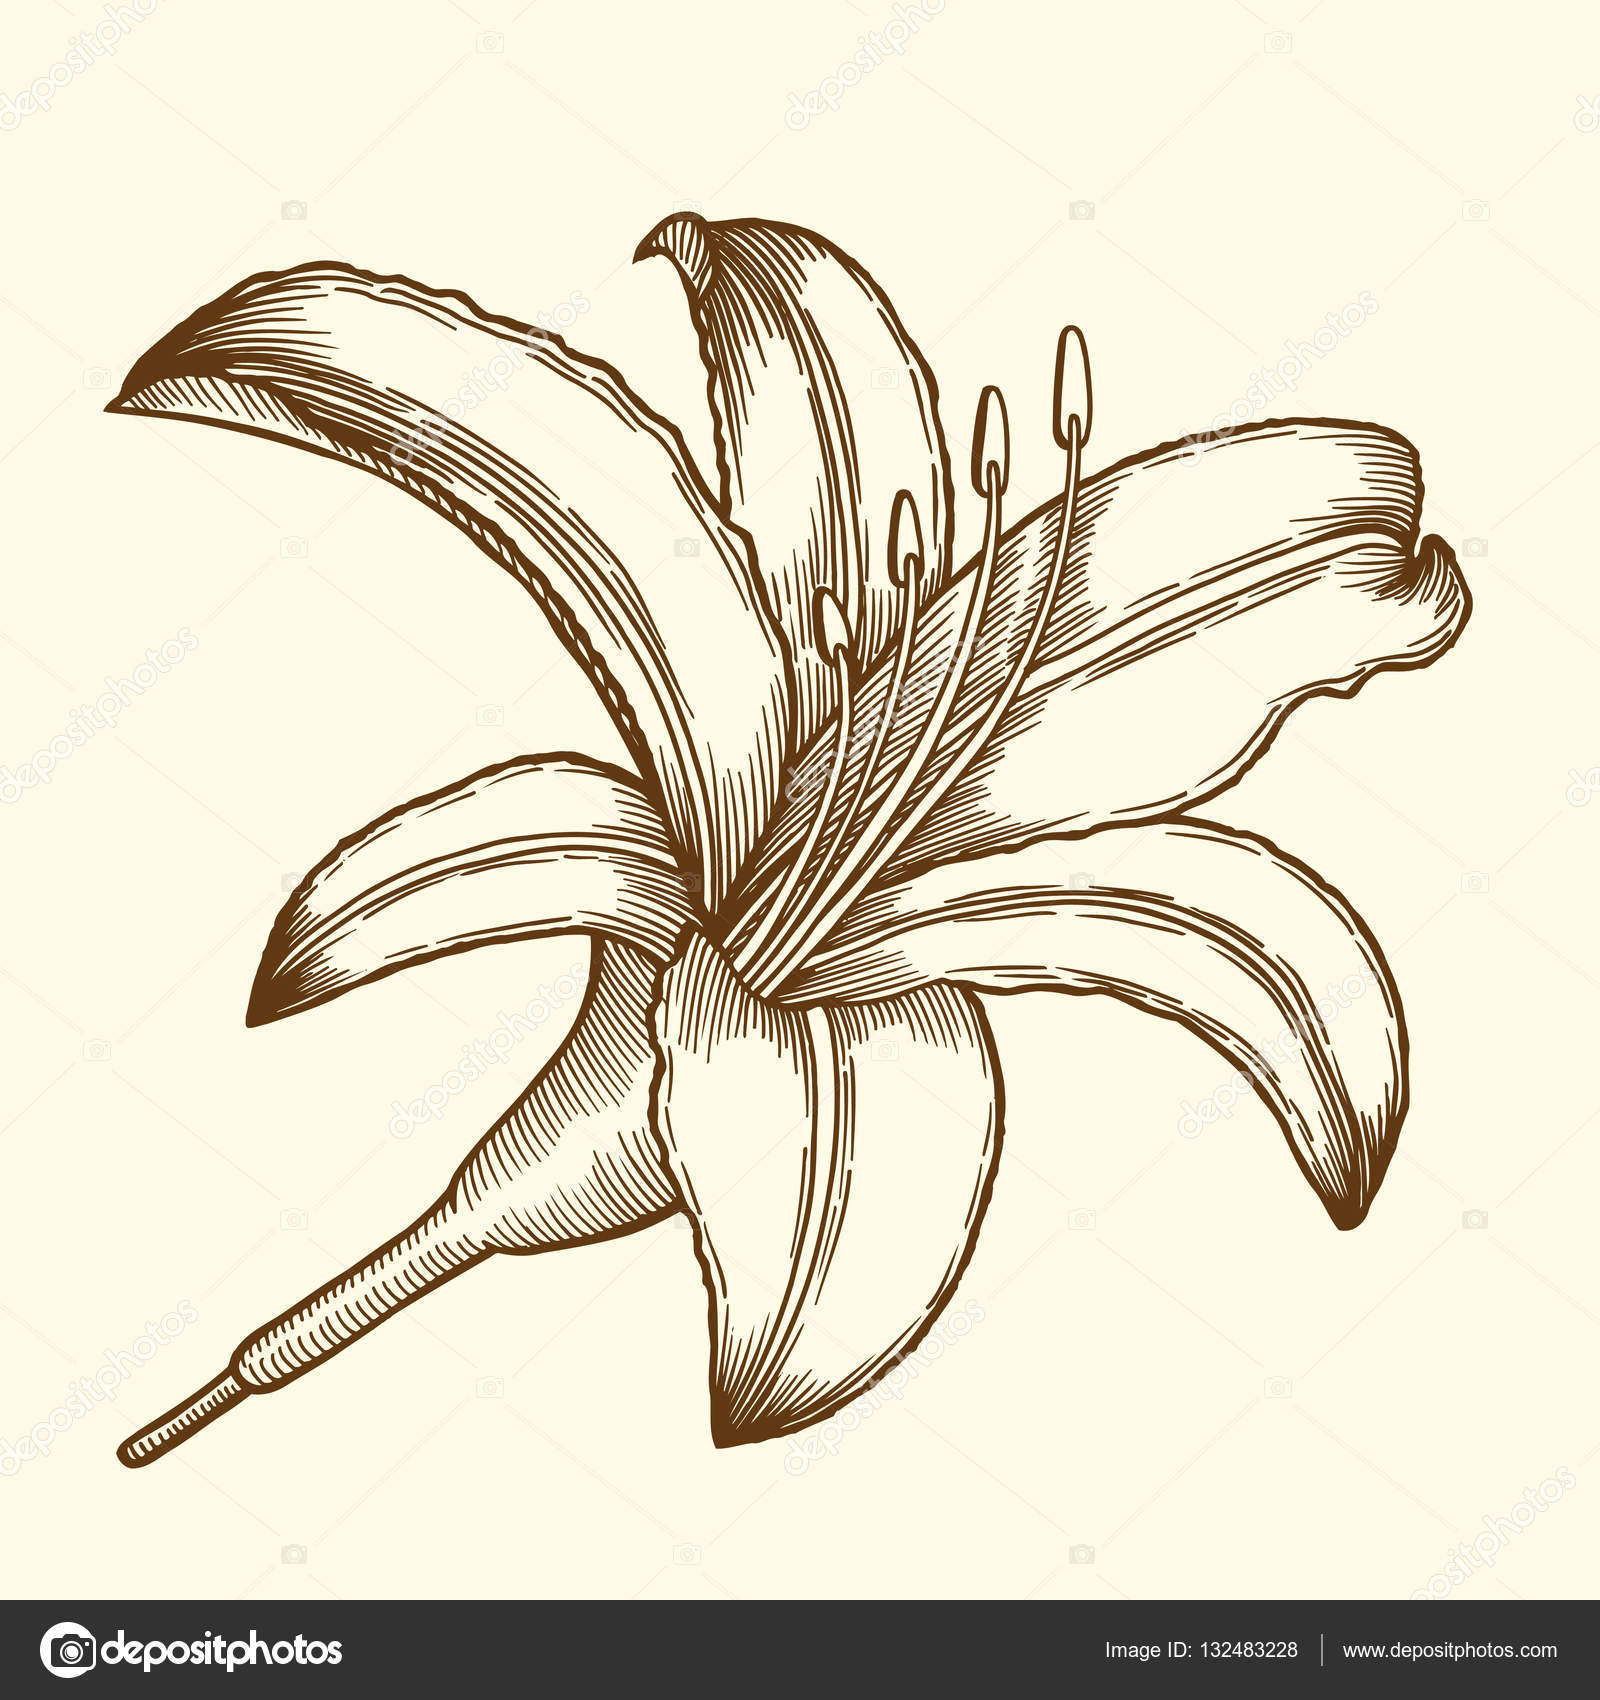 Beautiful flower lily stock vector frescomovie 132483228 beautiful flower lily painted in a graphic style points and lines a great figure for a tattoo vector by frescomovie izmirmasajfo